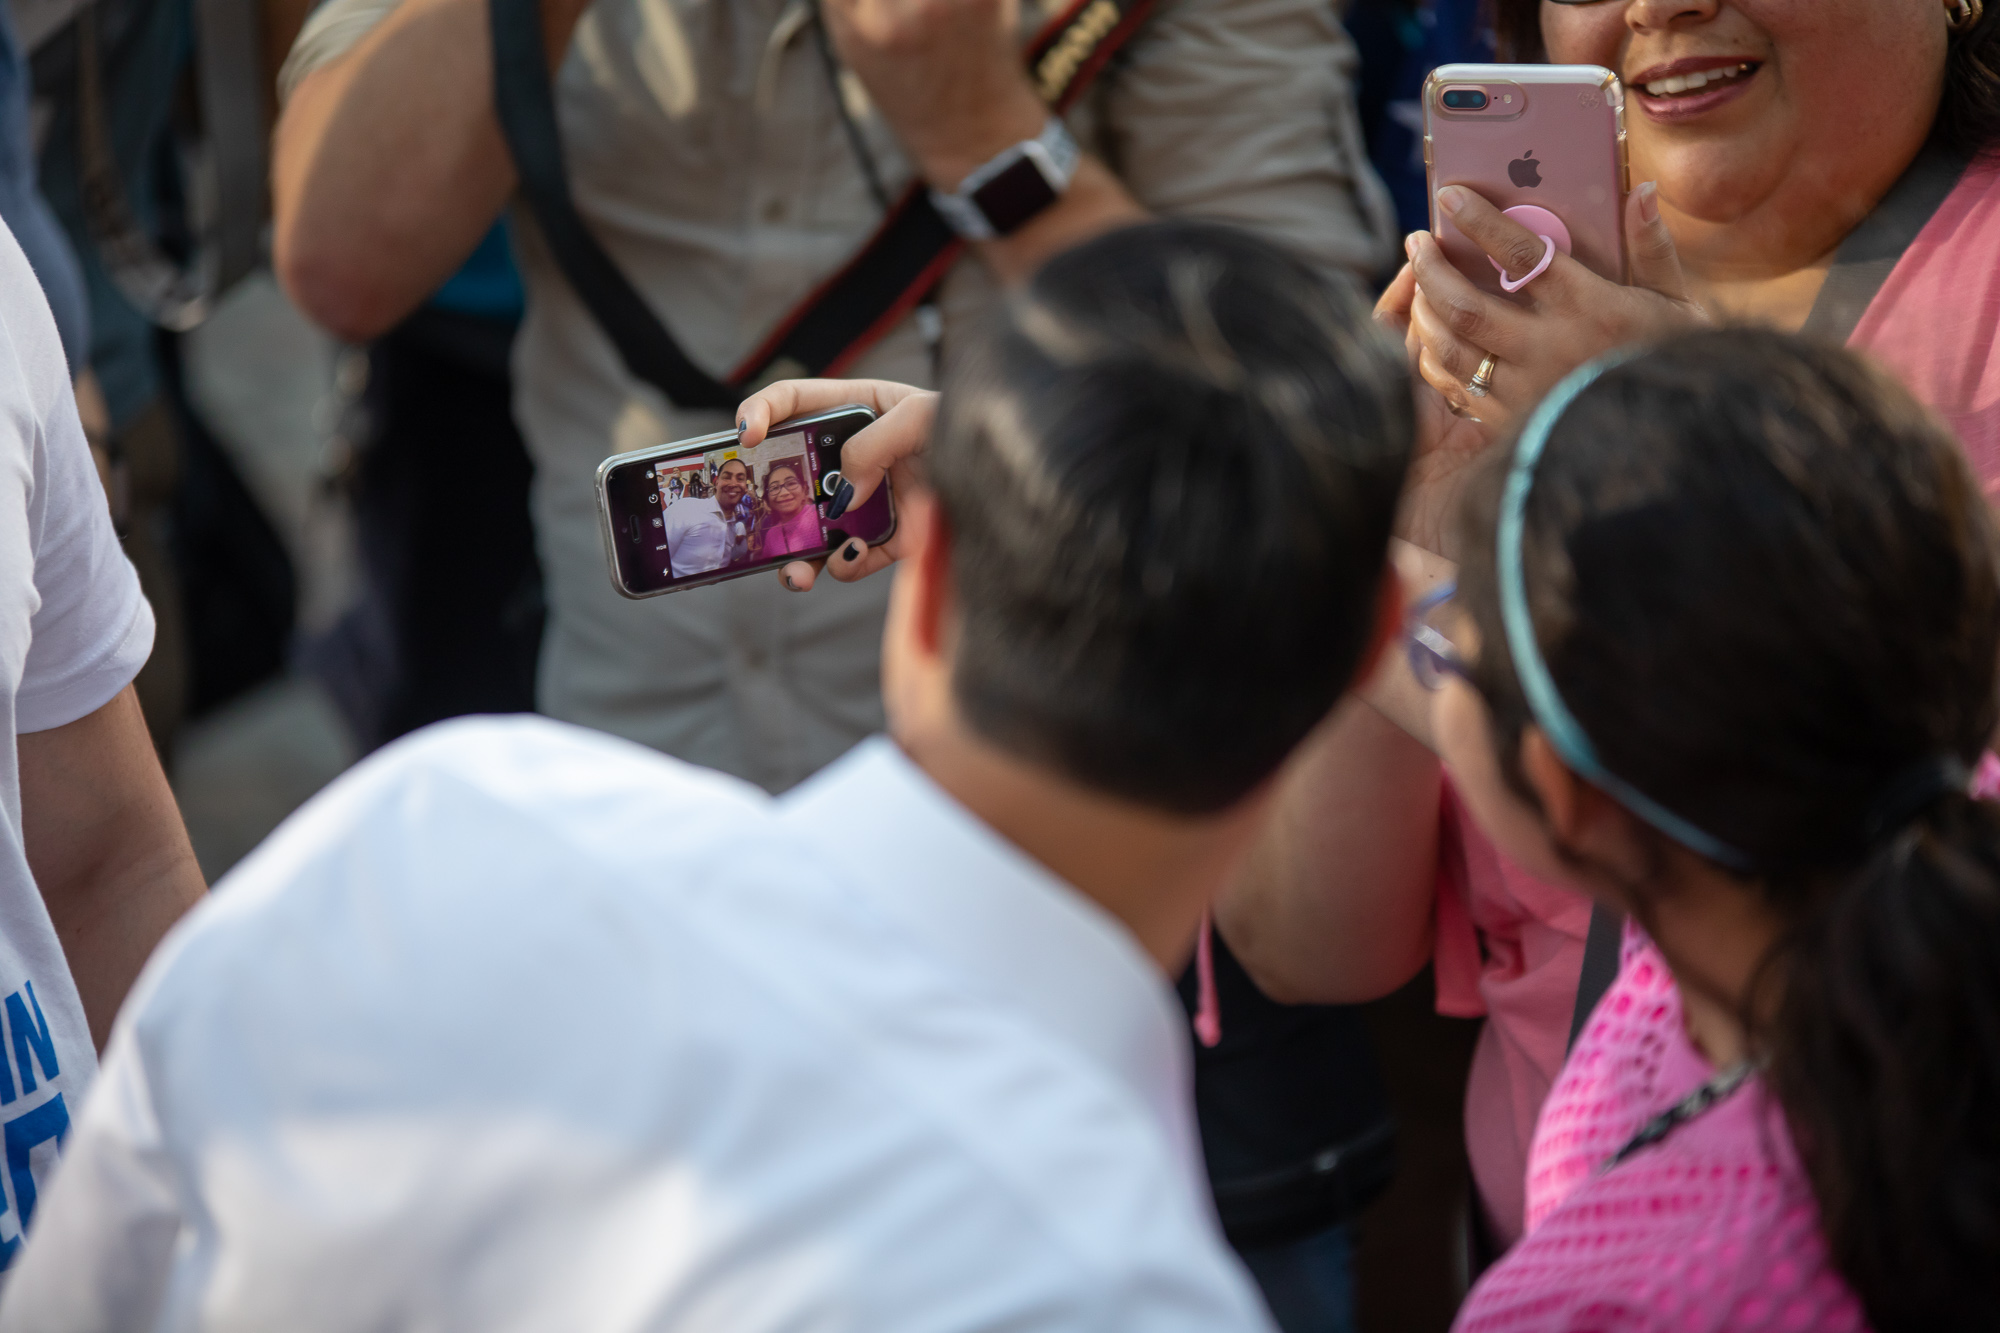 A young fan snaps a photo with the Presidential hopeful. (Photo by:  Joel Pena , Photographer - The San Antonio Sentinel)